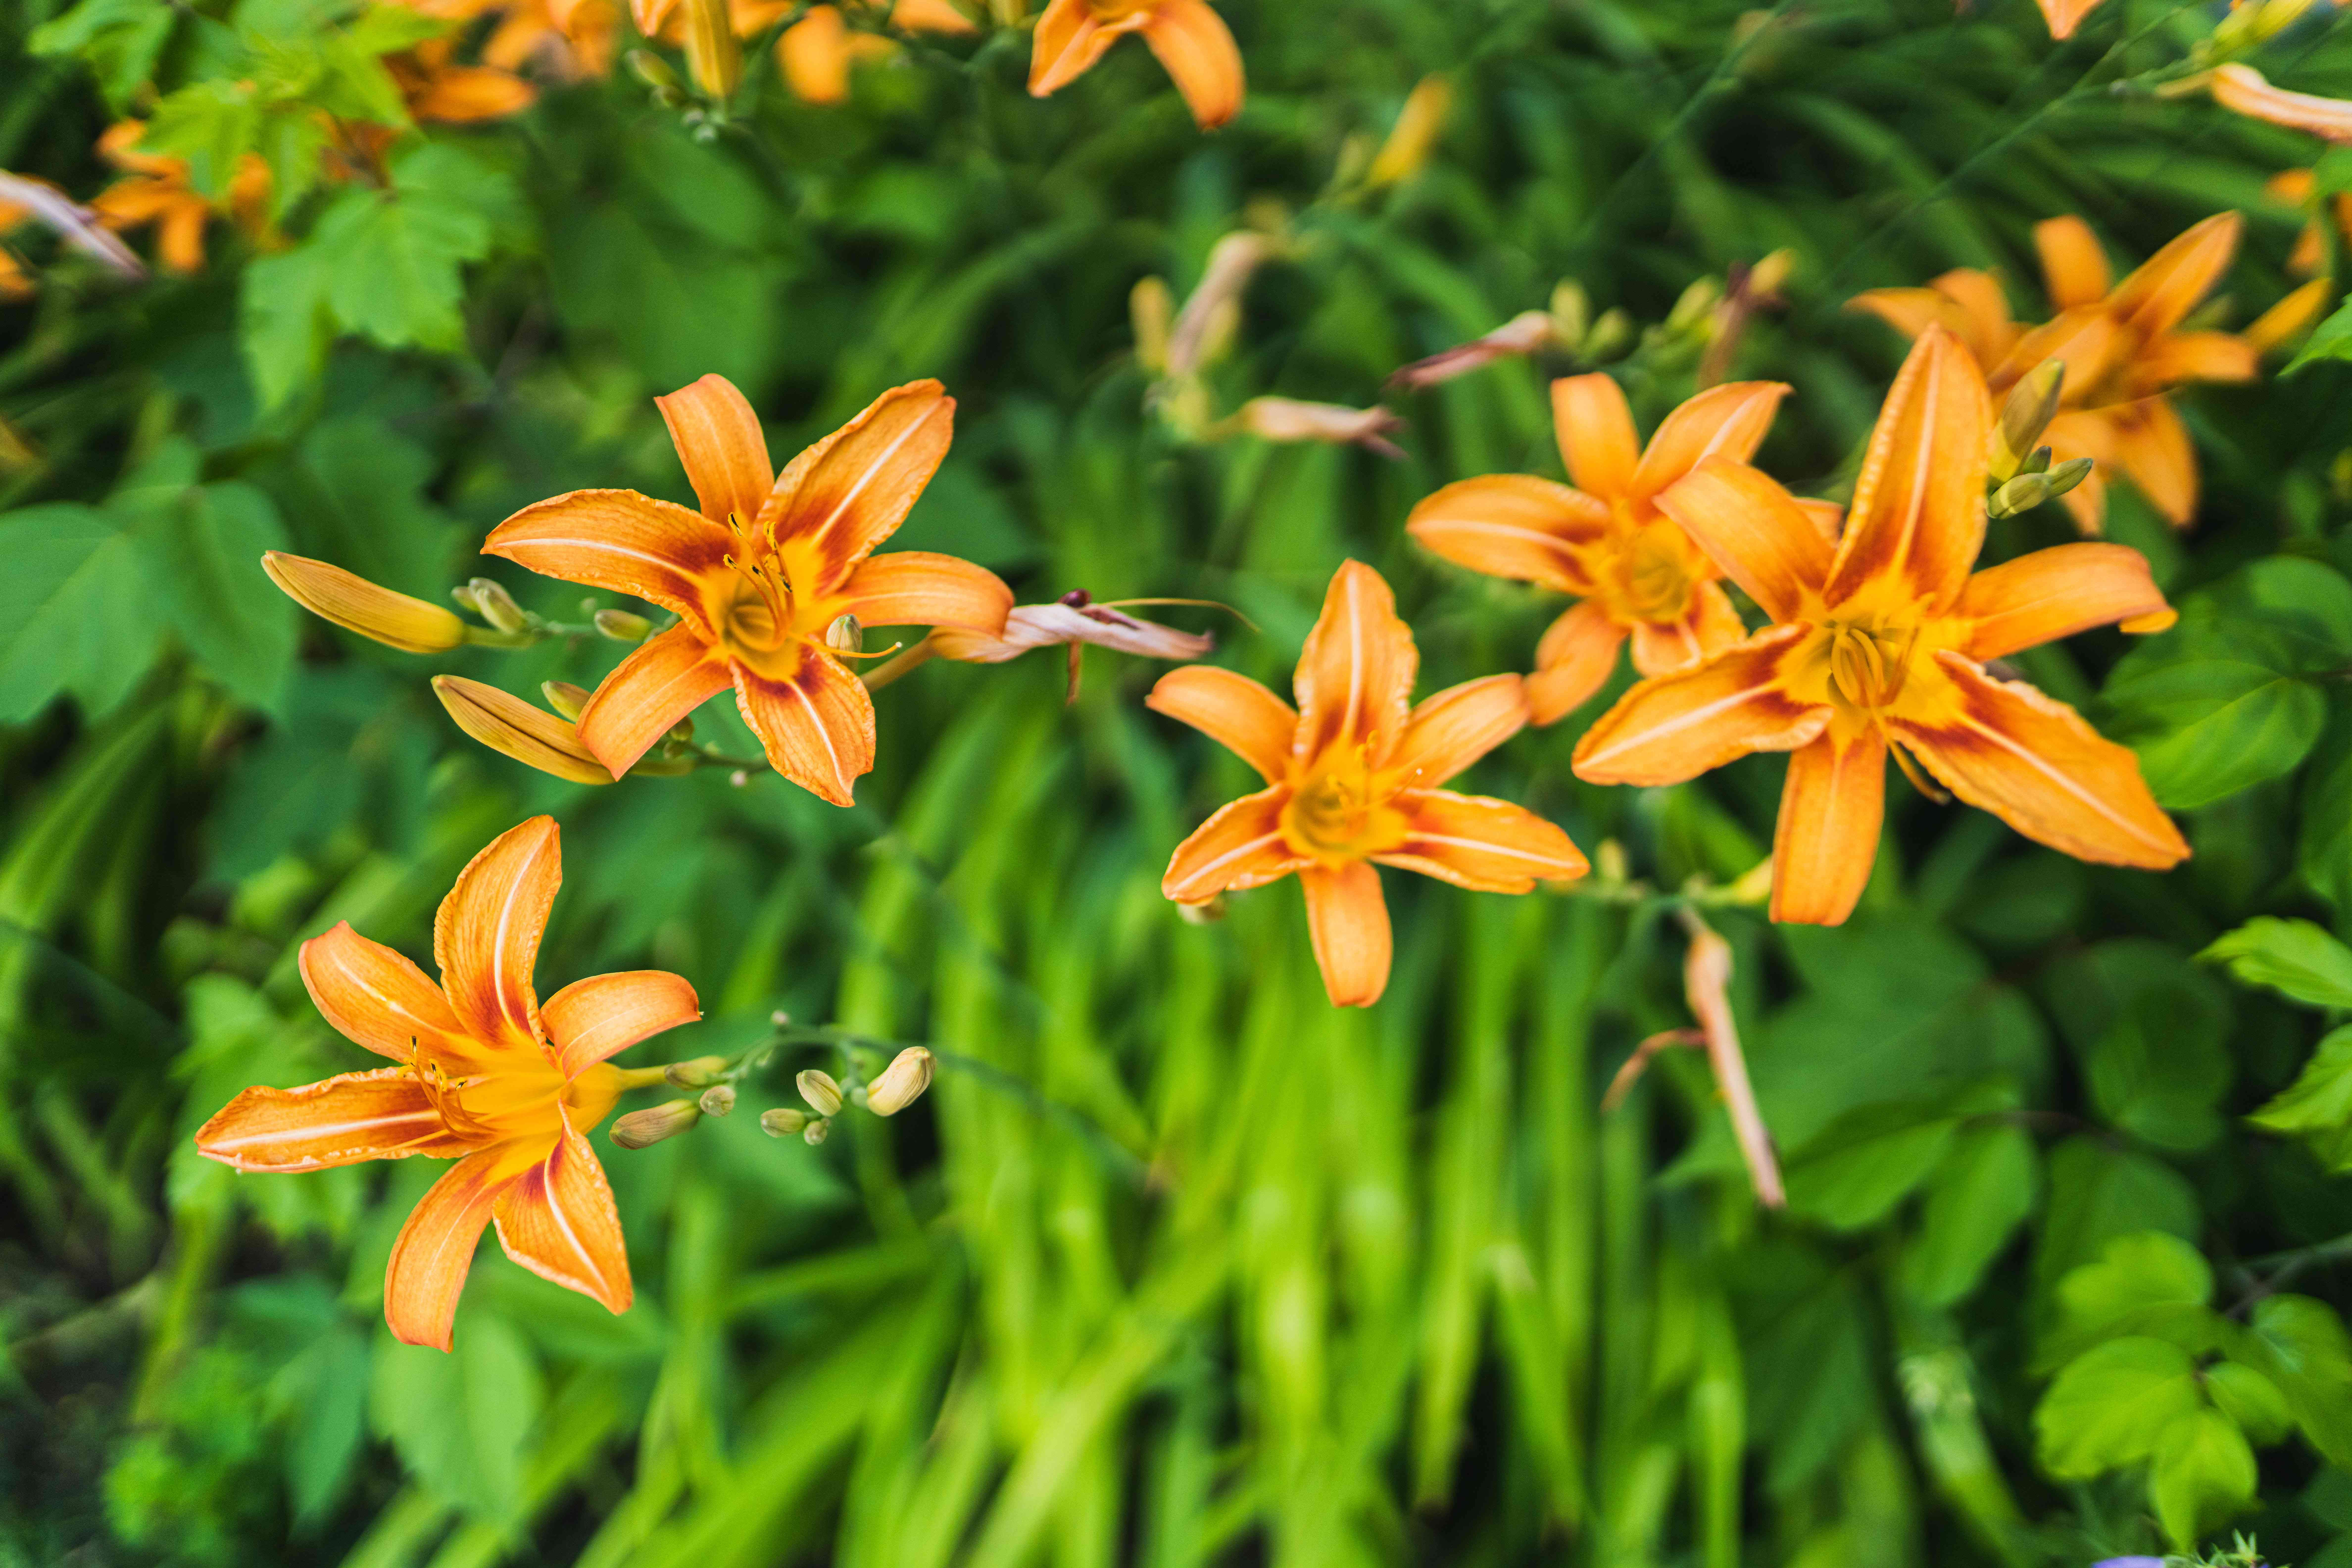 Orange daylily flowers with orange star-shaped petals on thin stems with buds